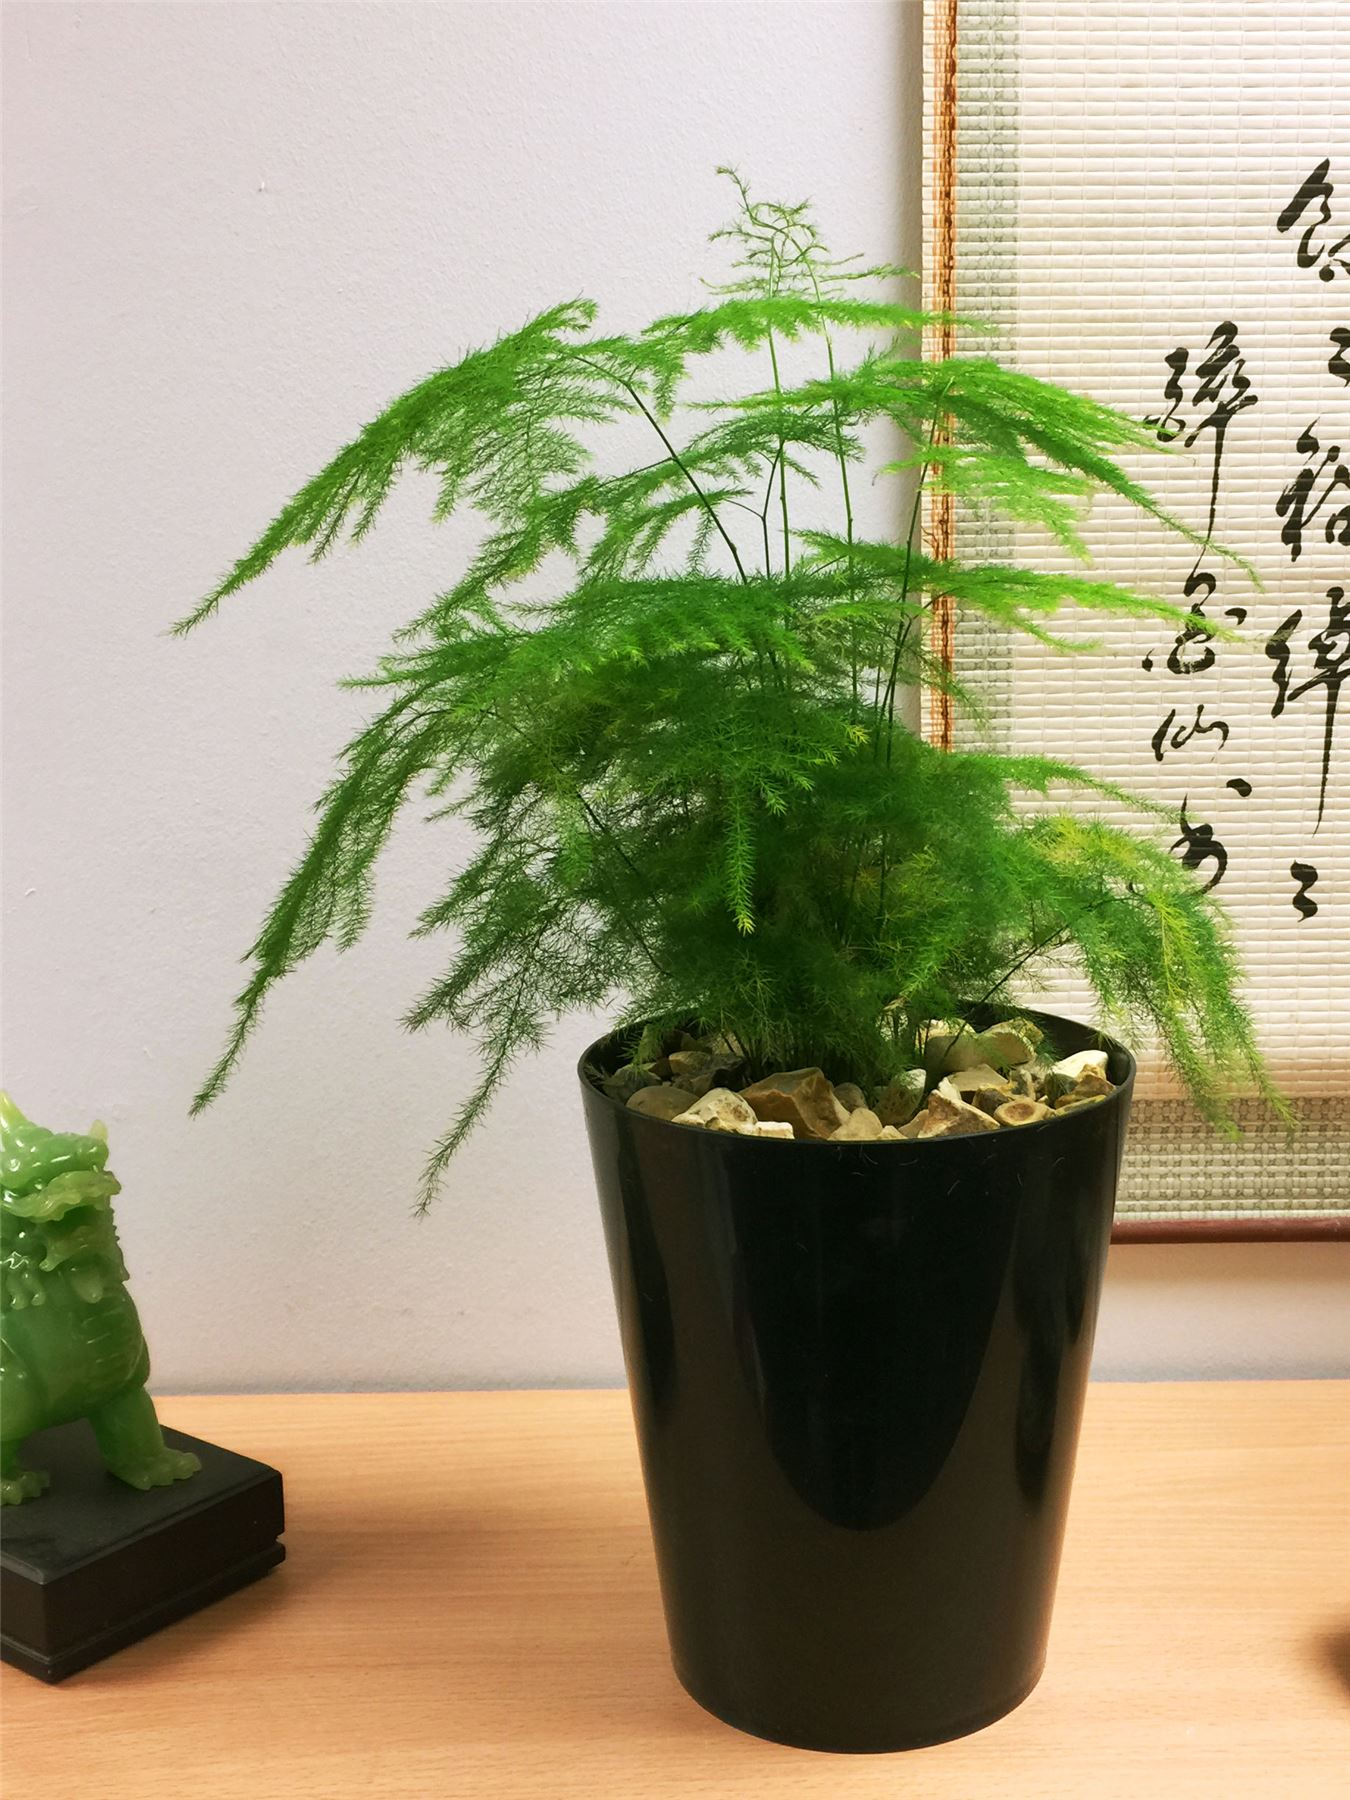 Plant Pot Sale 1 X Asparagus Fern Evergreen Indoor Office House Plant